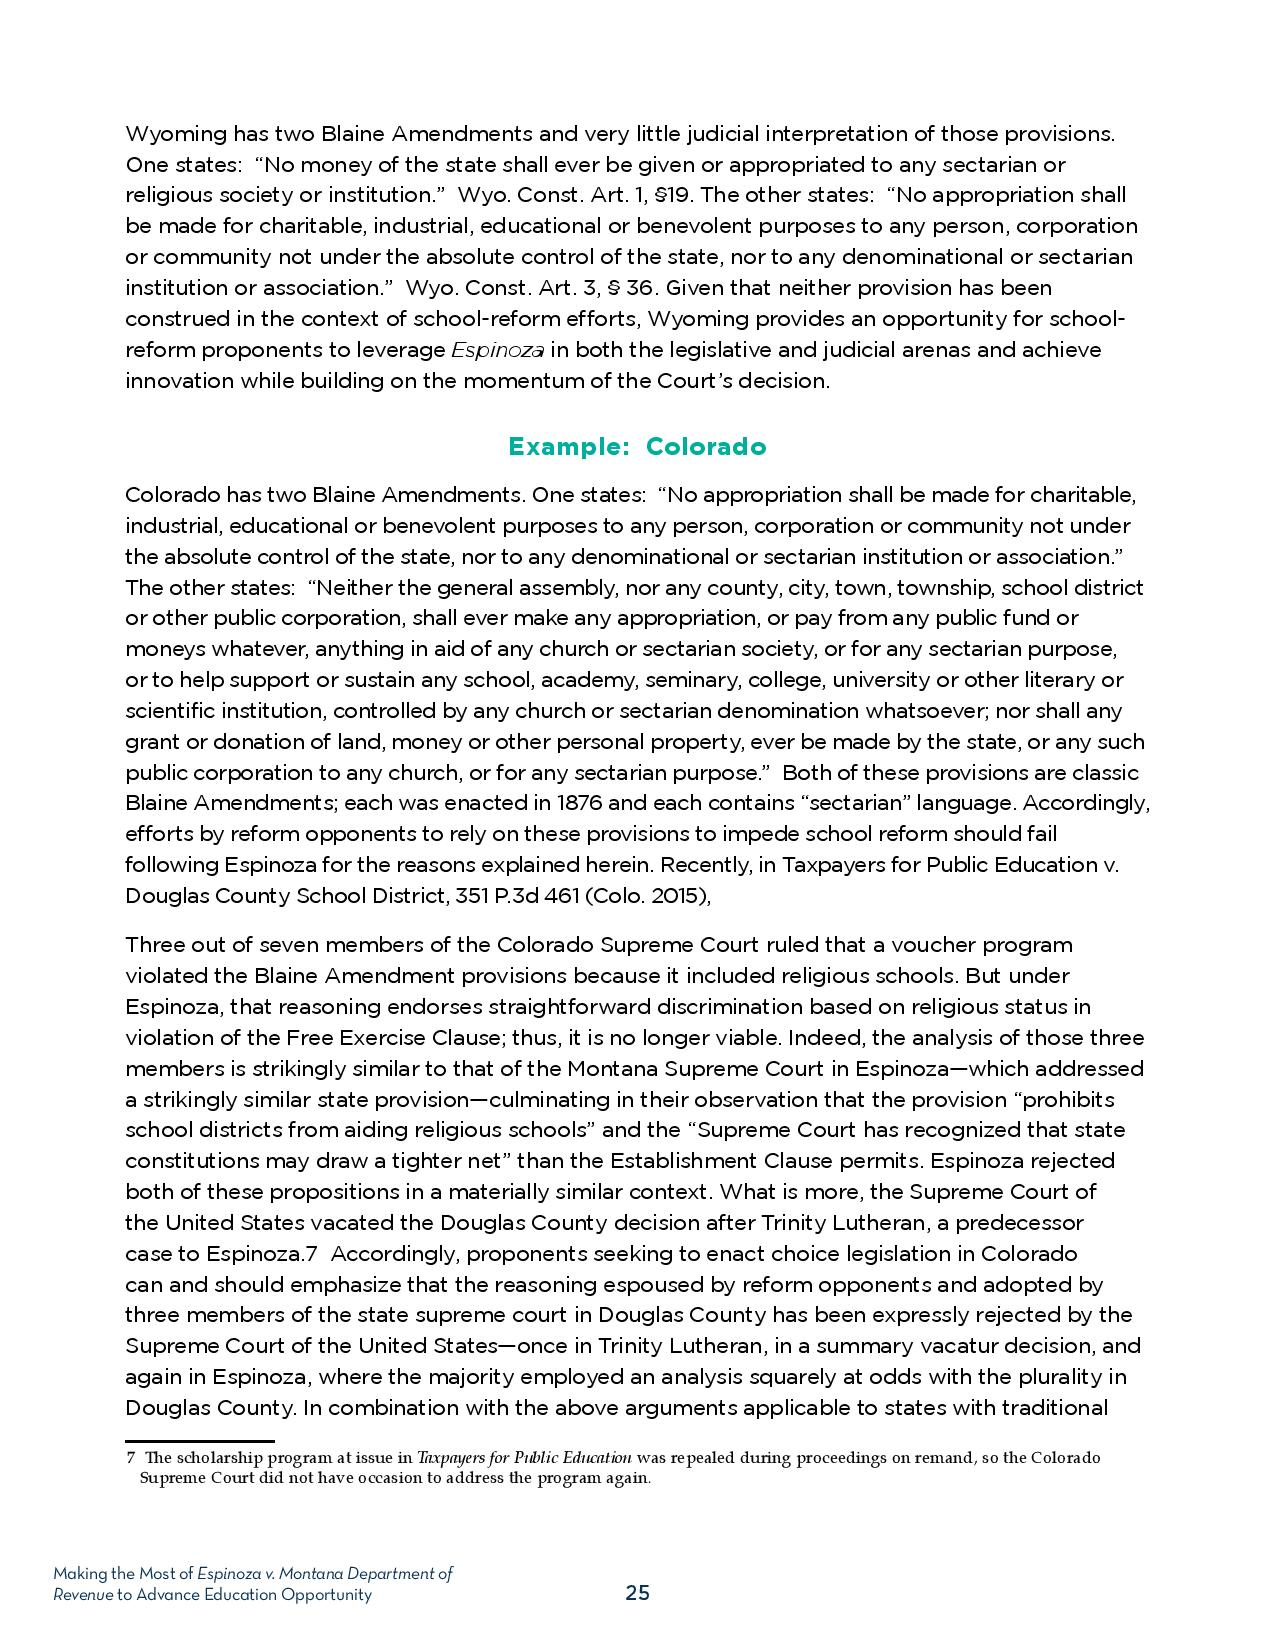 CER_Whitepaper_Blaine-page-025